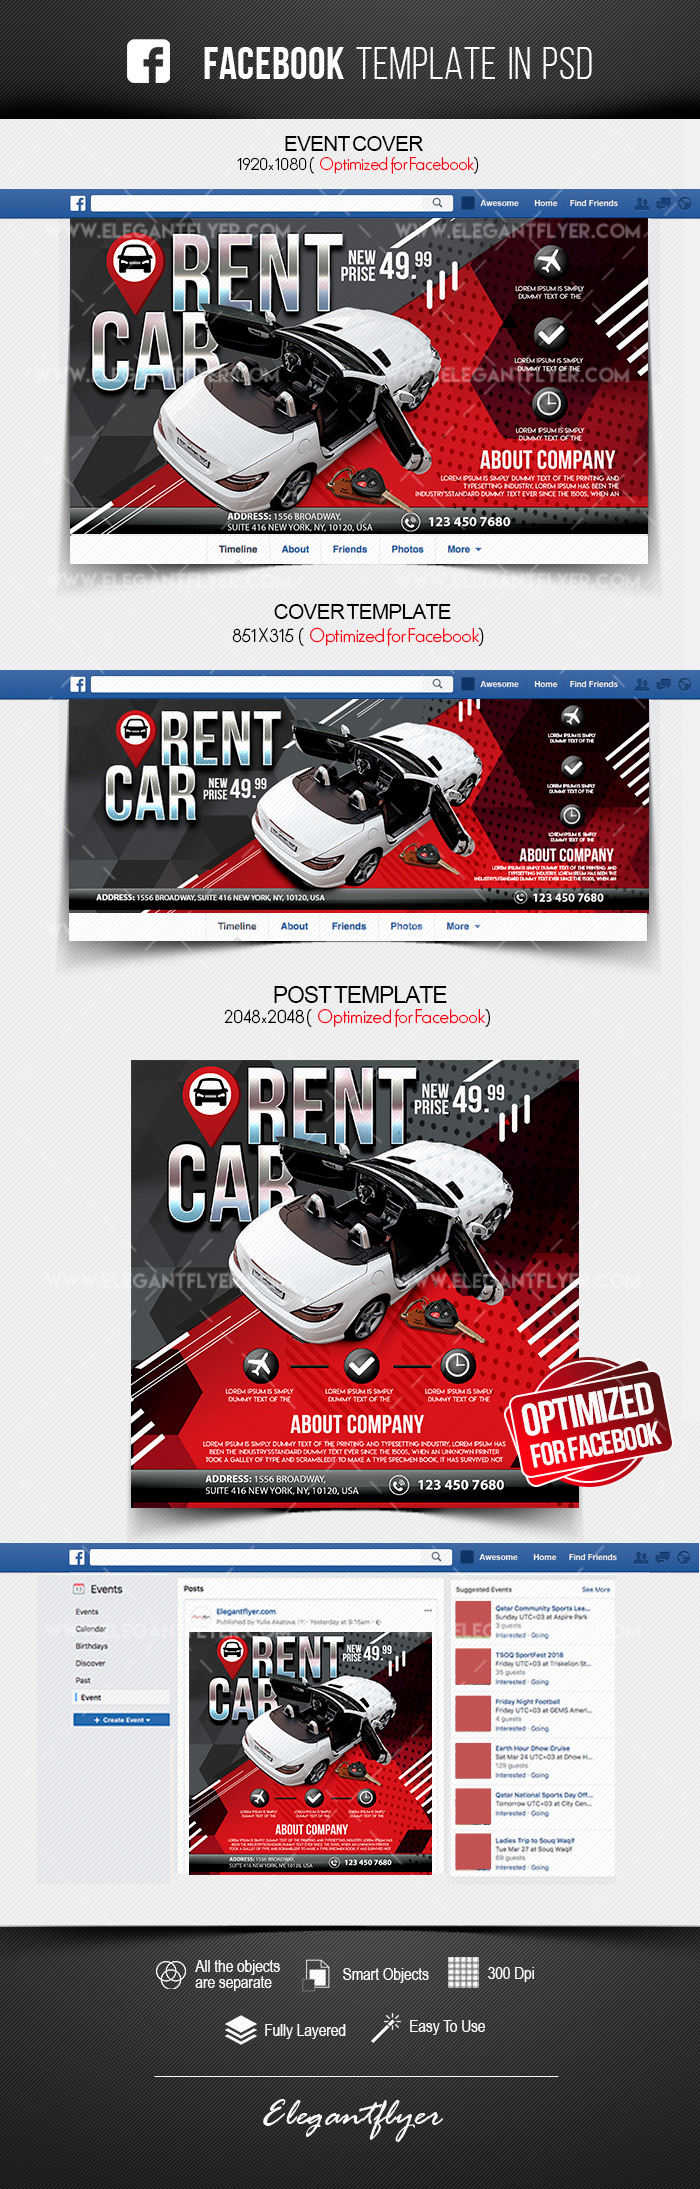 Rent a Car – Facebook Cover Template in PSD + Post + Event cover